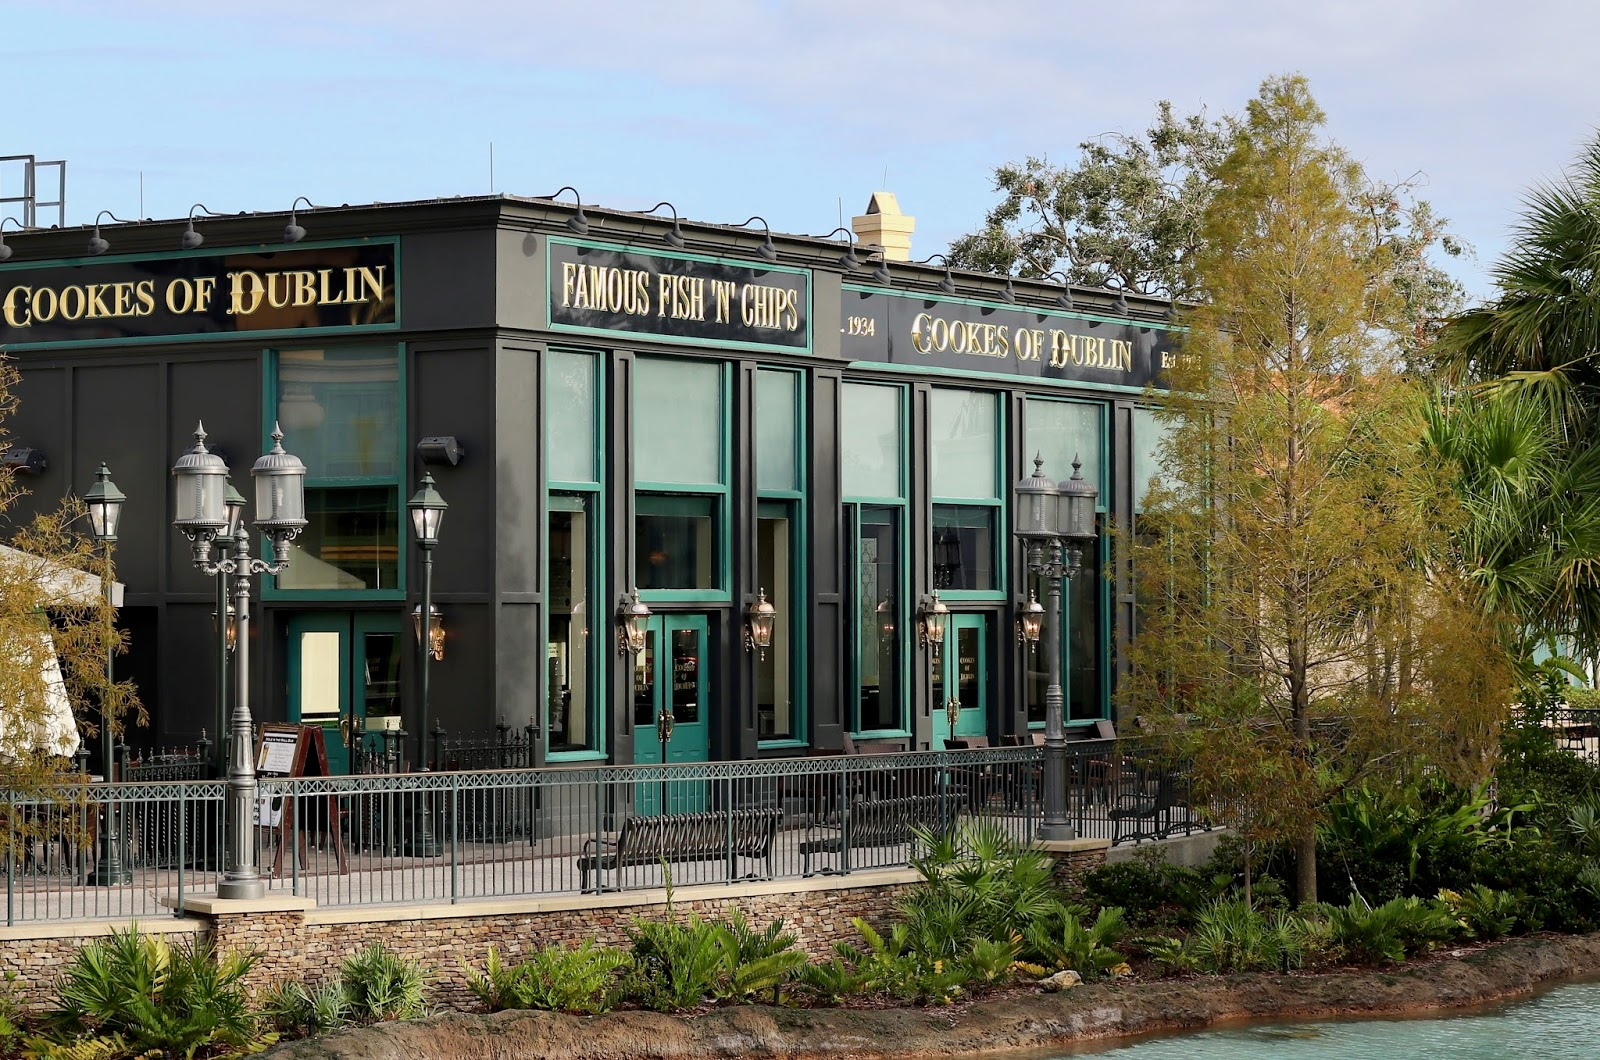 Disney-Springs-Cooks-of-Dublin-fish-and-chips-Orlando-Florida